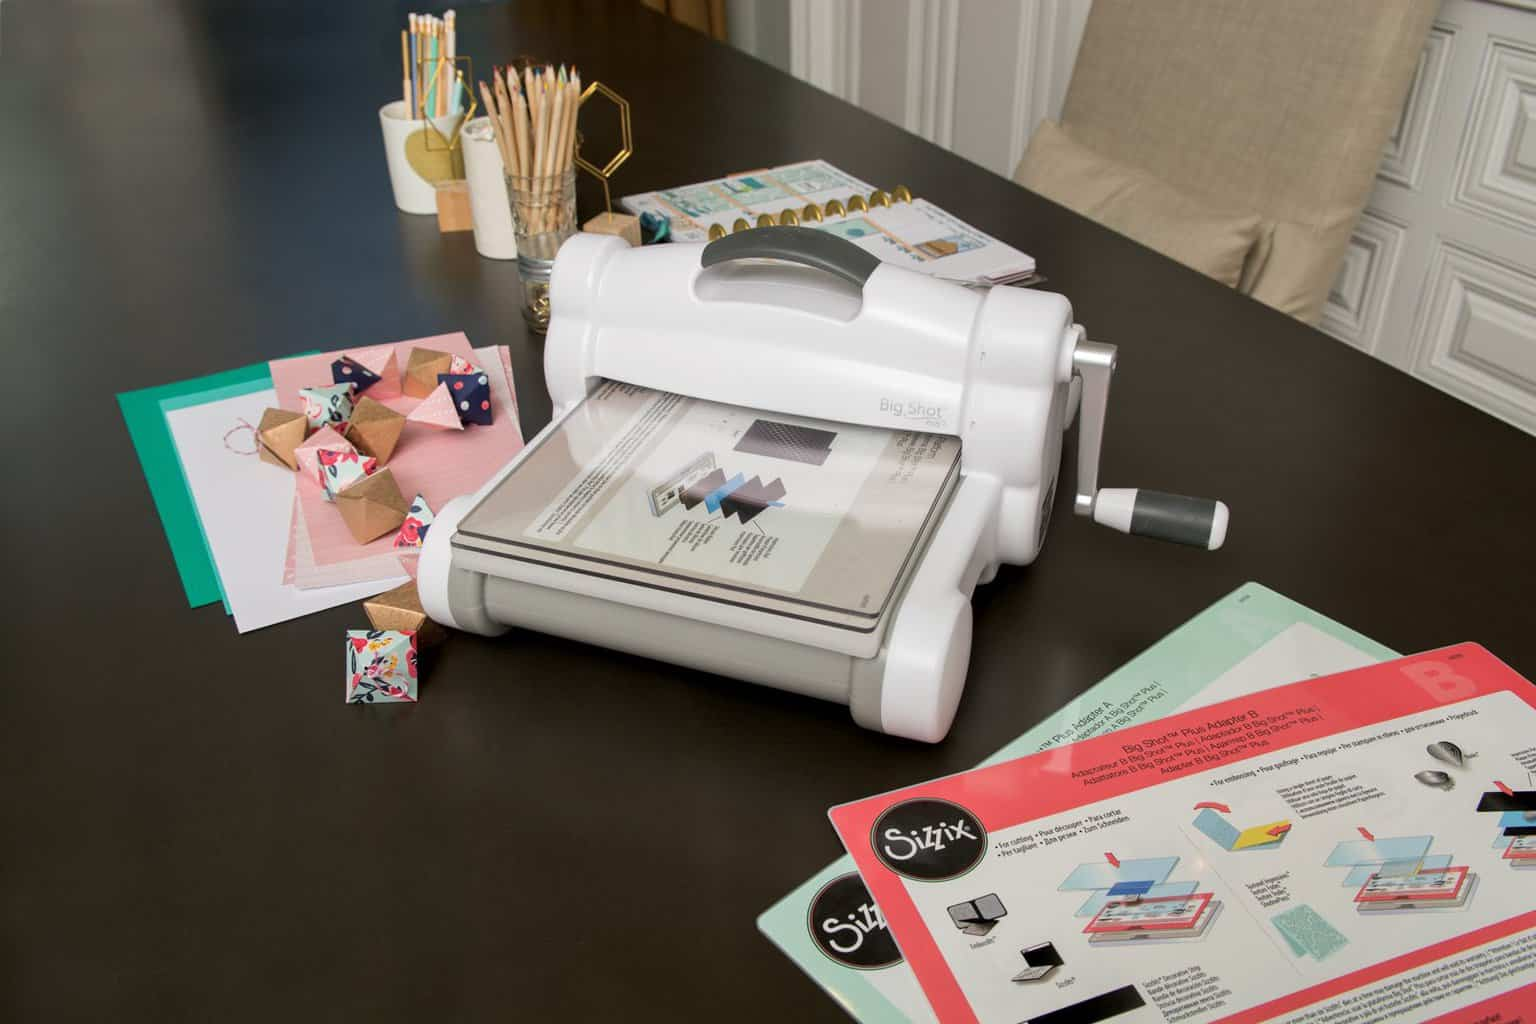 Ultimate Guide To The Best Die Cut Machine Of 2019 Reviews Table Got My Circuit Personal Electronic Cutter A Year Ago For I Guess Your Main Problems Will Be Which Dies And Embossing Folders Purchase With These Scrapbook Cutting Machines